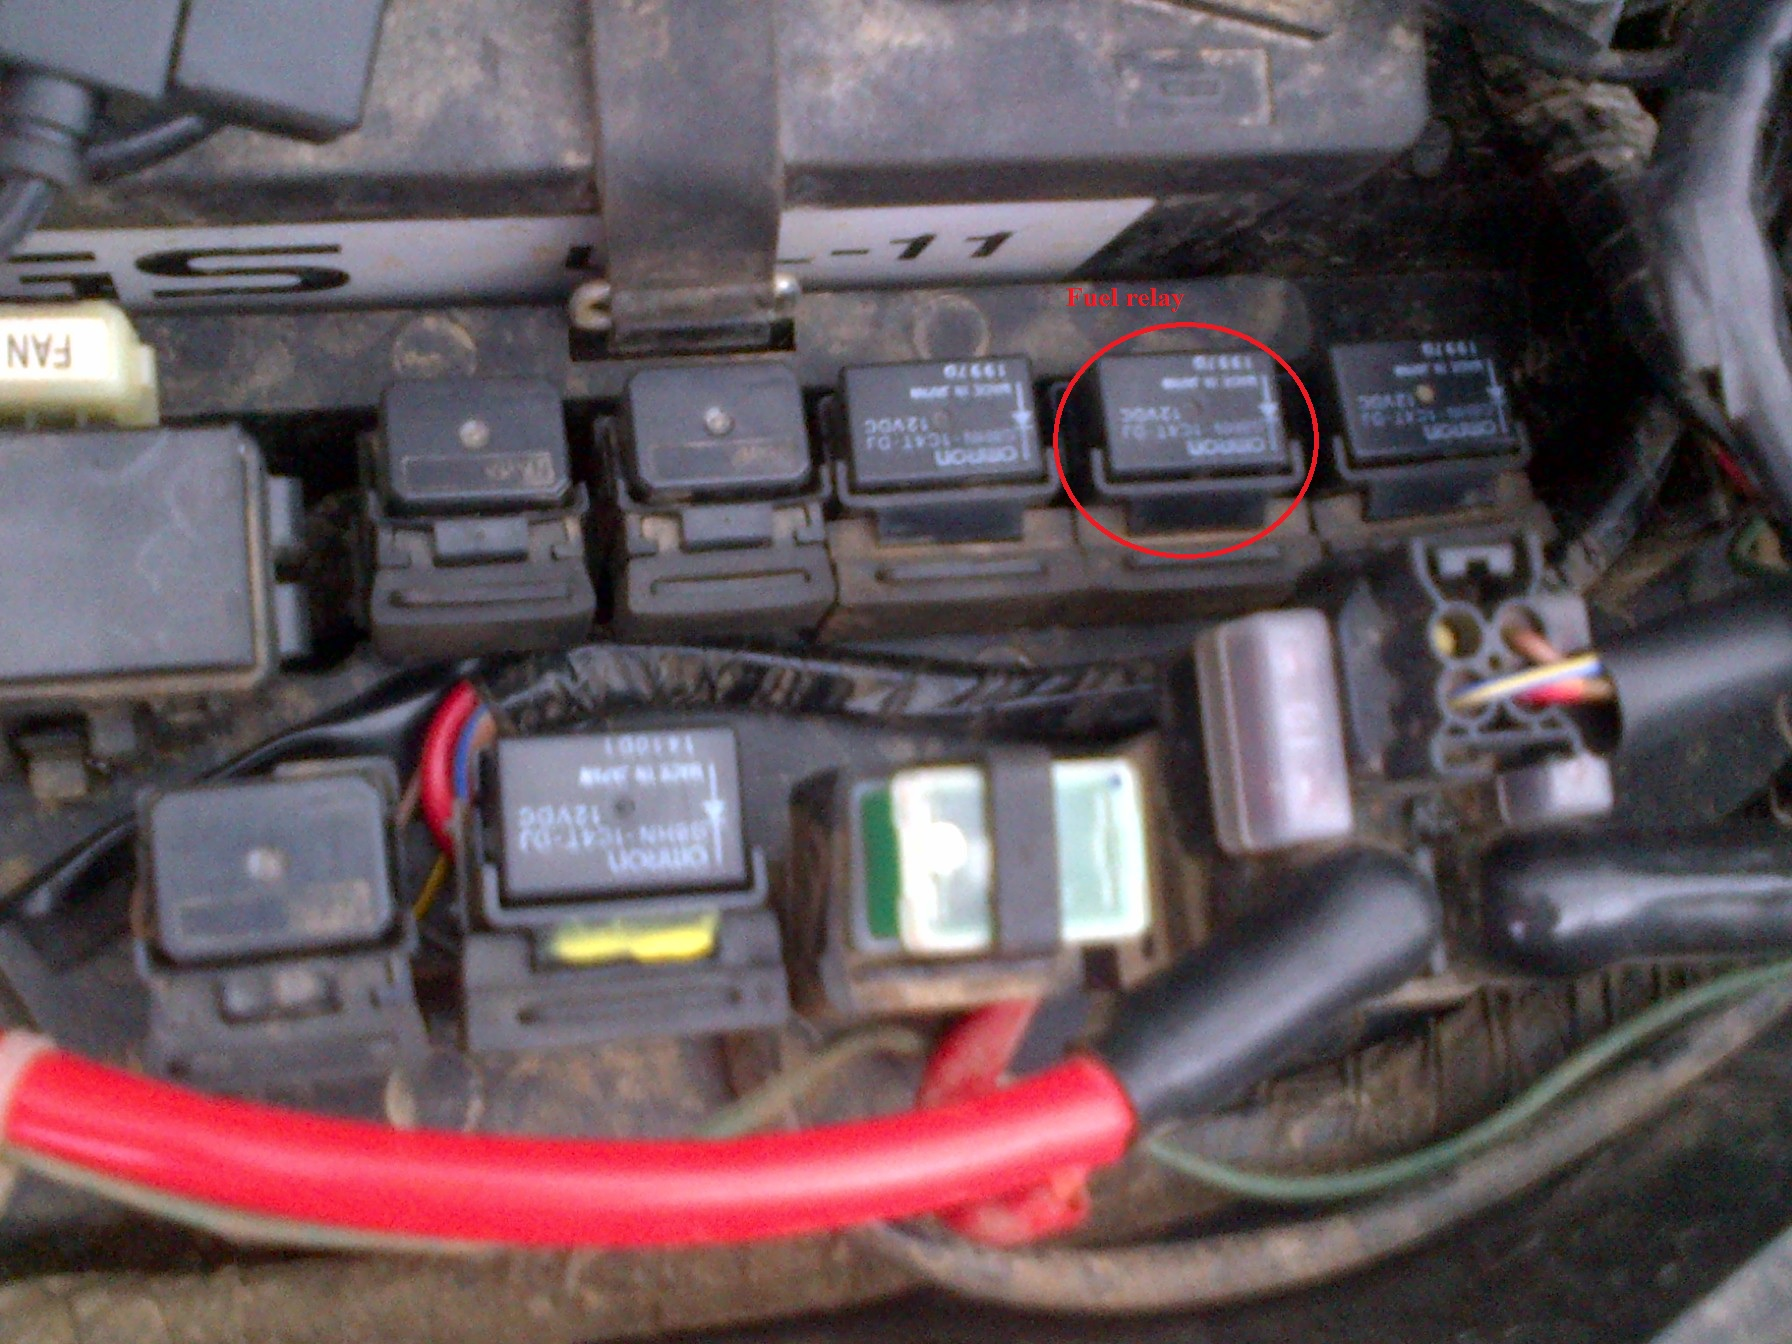 yamaha rhino 700 wiring diagram the wiring diagram 2005 yamaha rhino 660 wiring diagram 2005 wiring diagrams wiring diagram